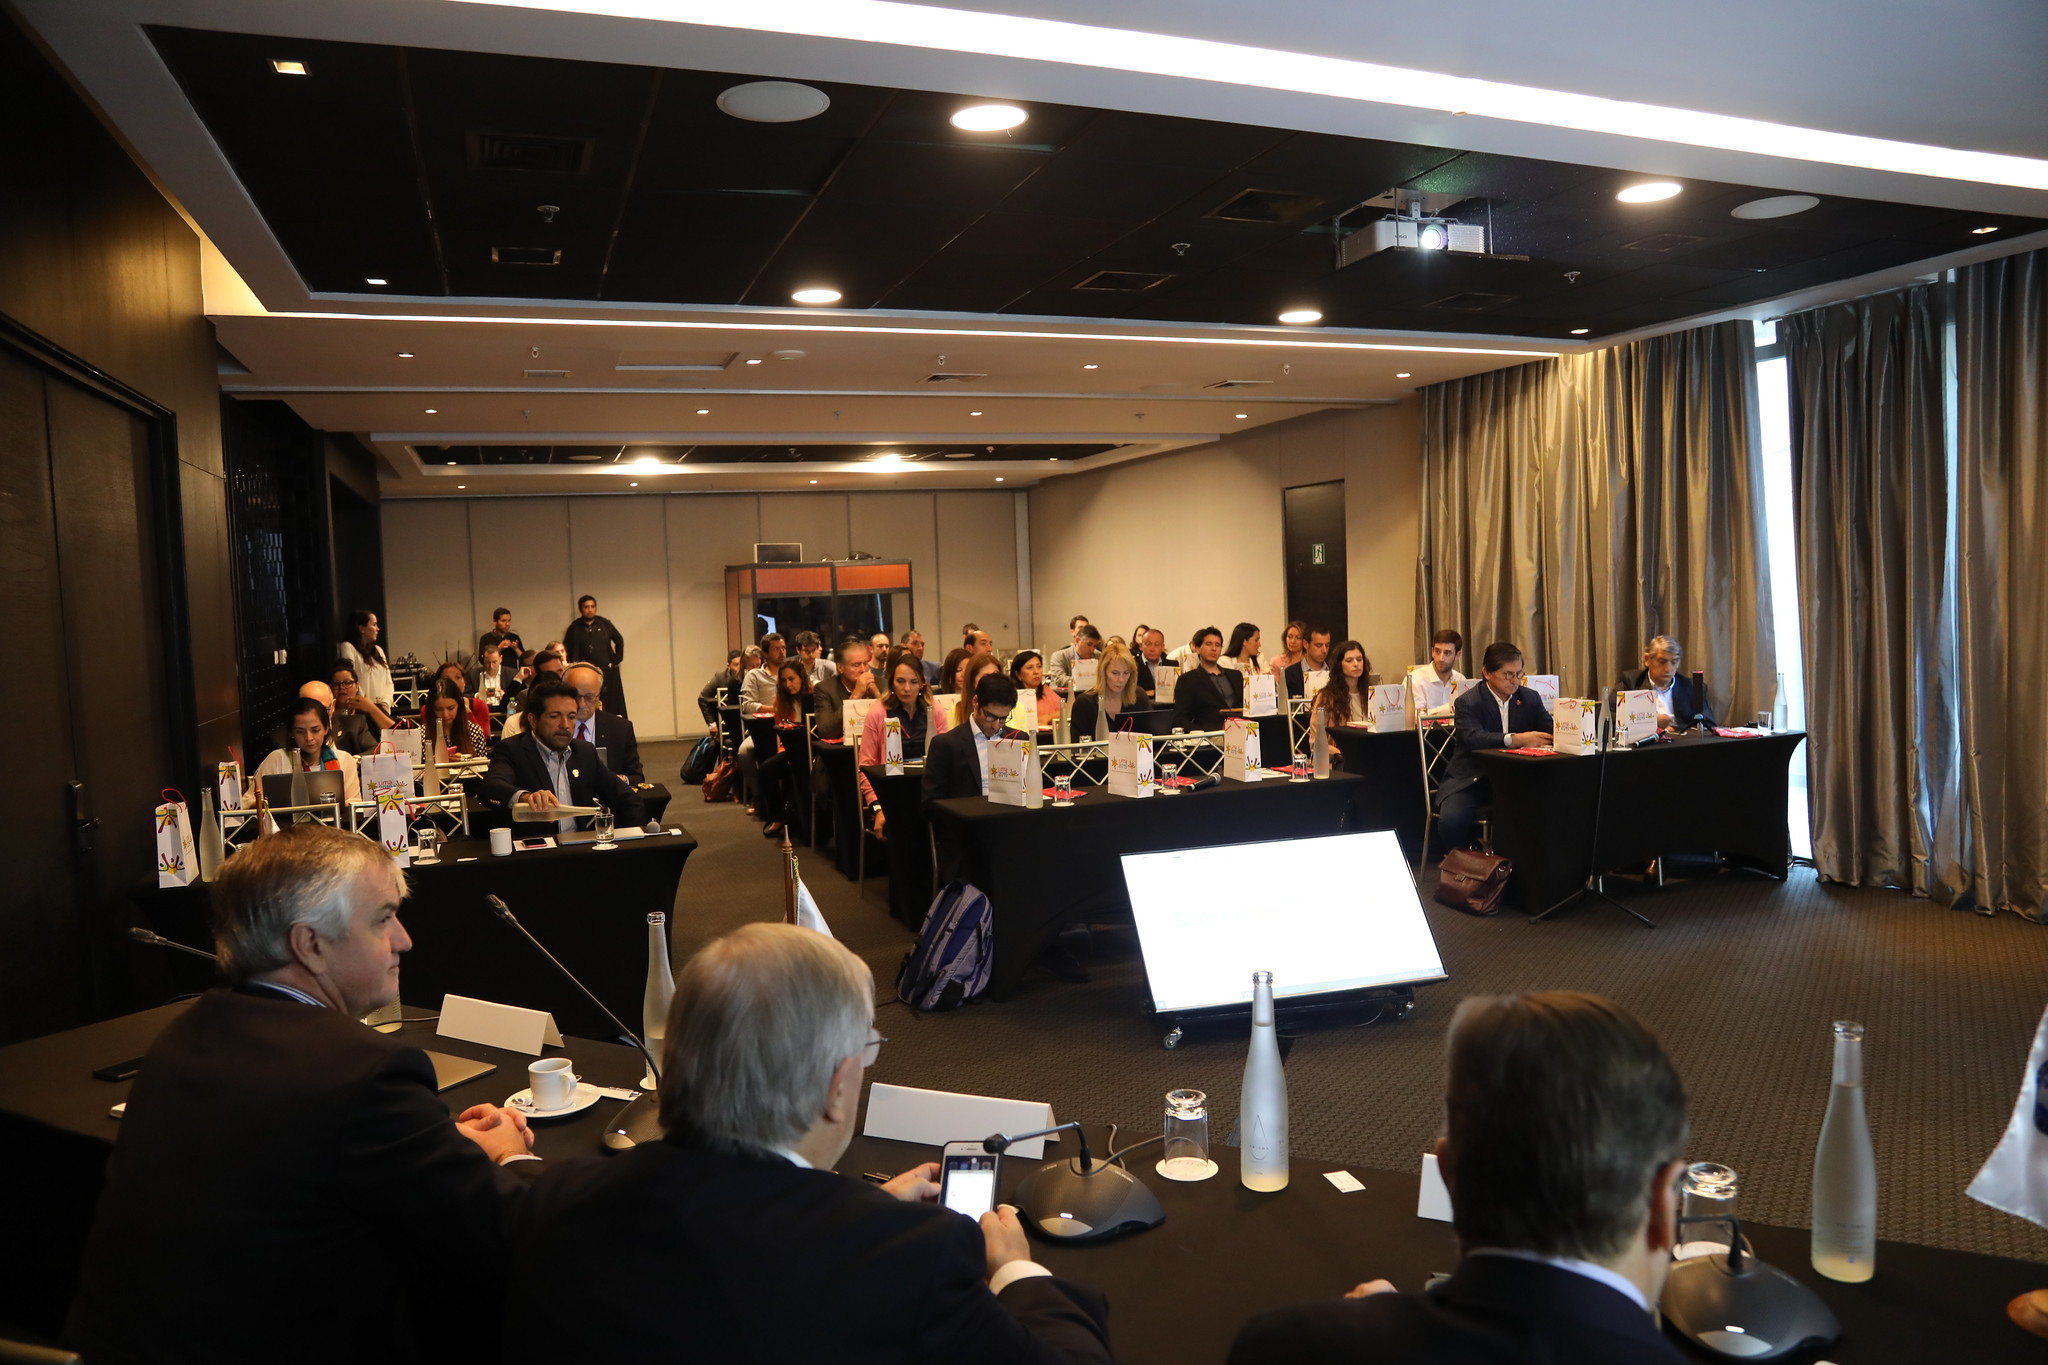 Lima 2019 and Santiago 2023 officials discussed areas including infrastructure, volunteering and budgets during a seminar in Santiago ©Panam Sports